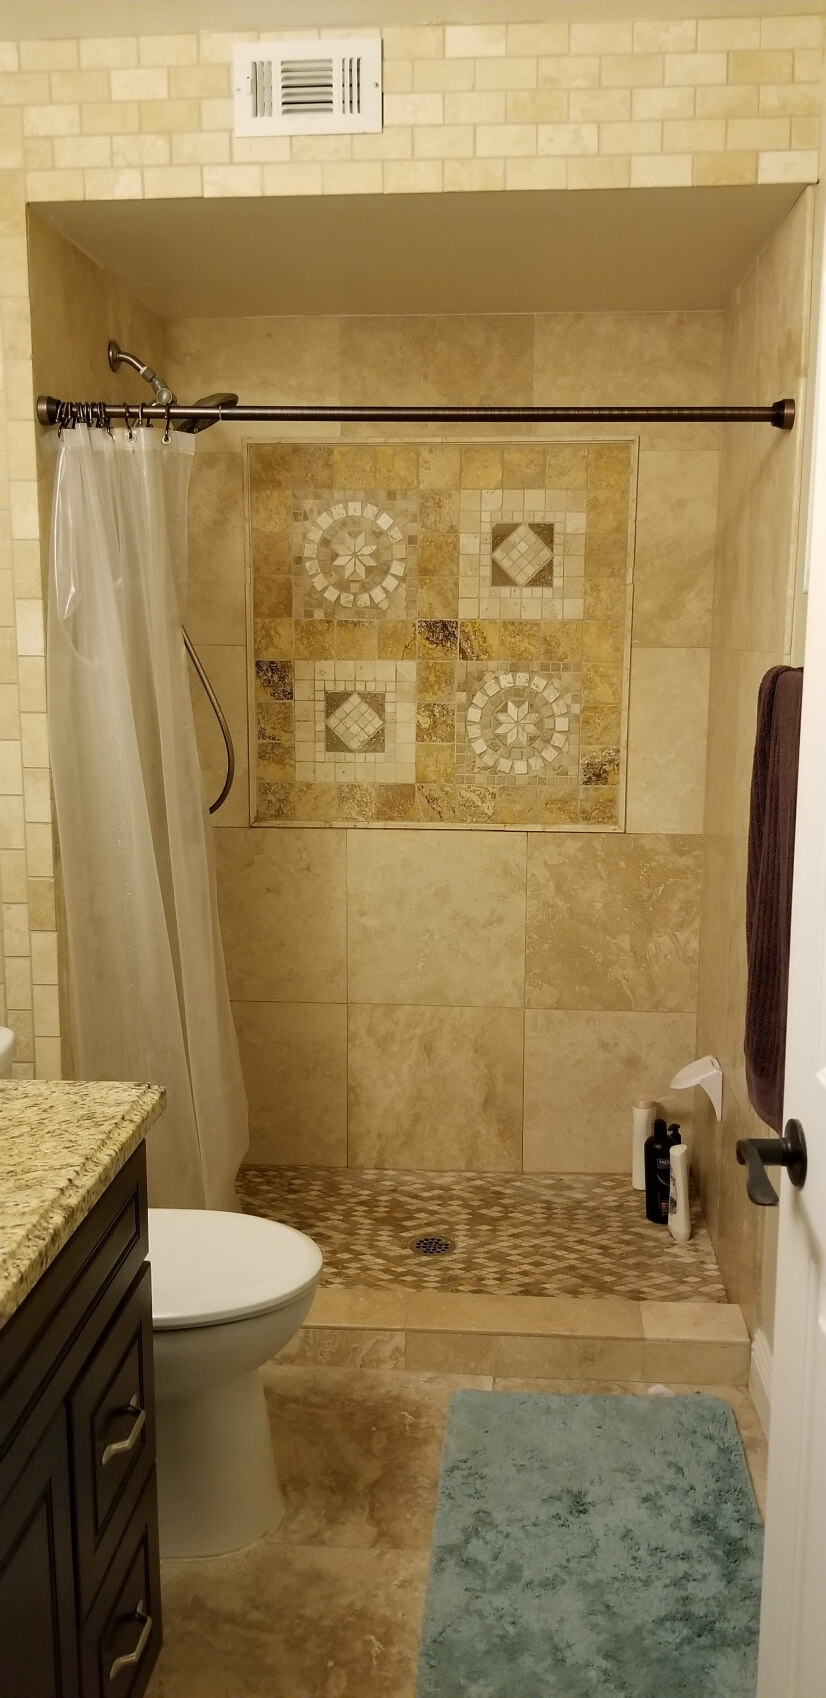 Oversized shower area